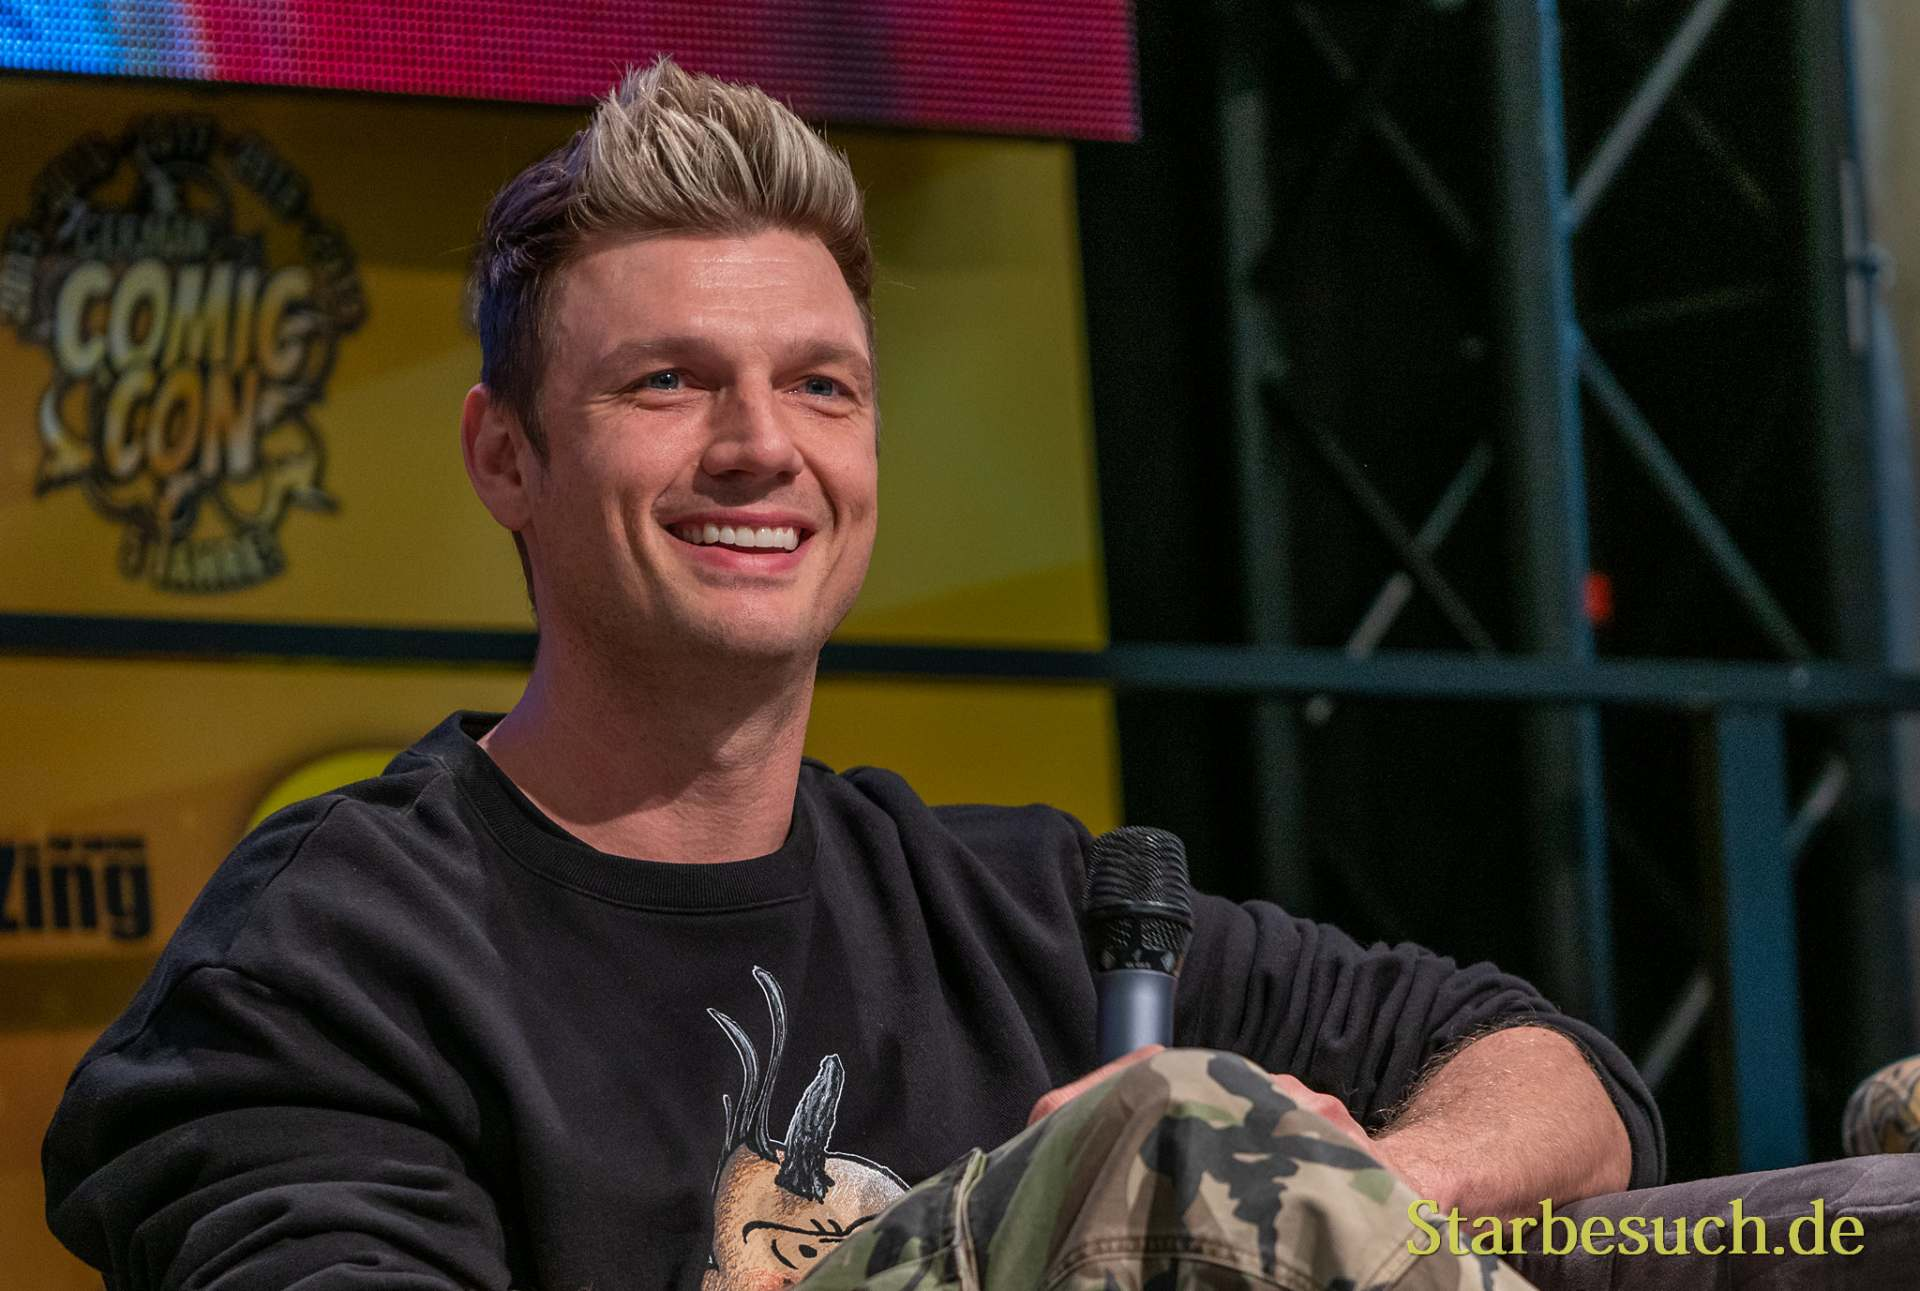 DORTMUND, GERMANY - December 7th 2019: Nick Carter at German Comic Con Dortmund